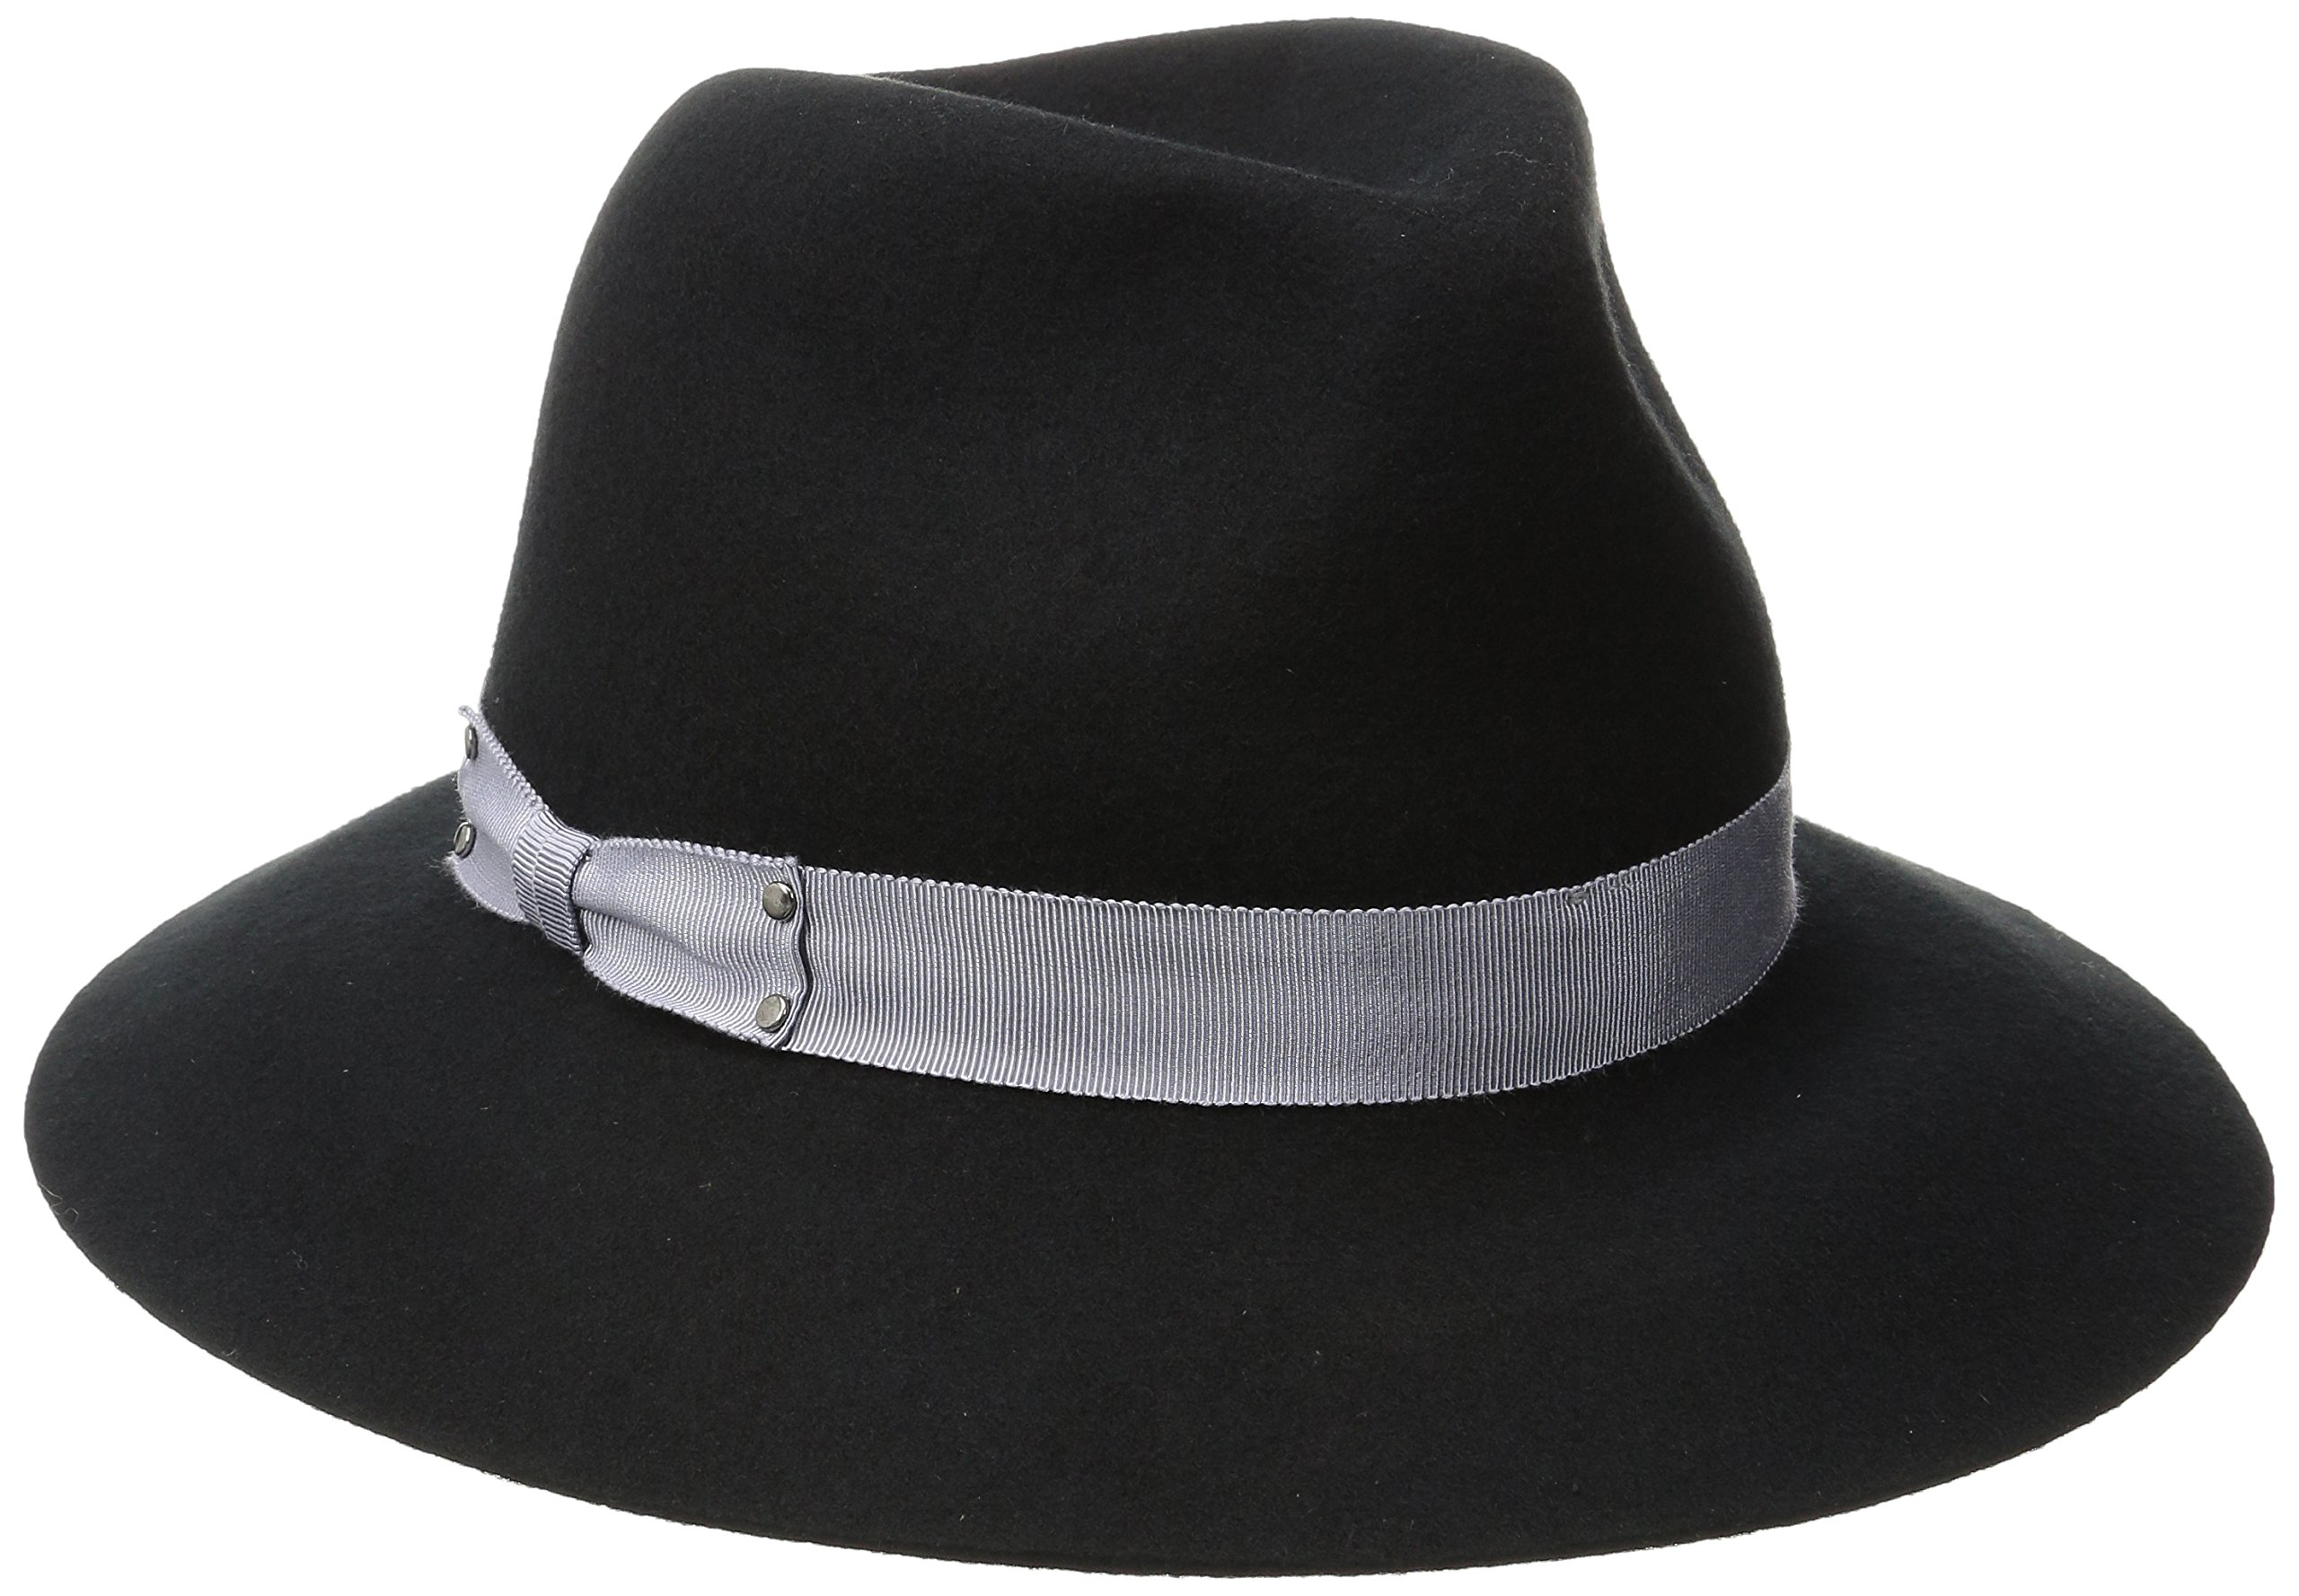 Genie by Eugenia Kim Women's Florence Wool Felt Wide-Brim Fedora Hat, Black, One Size by Genie by Eugenia Kim